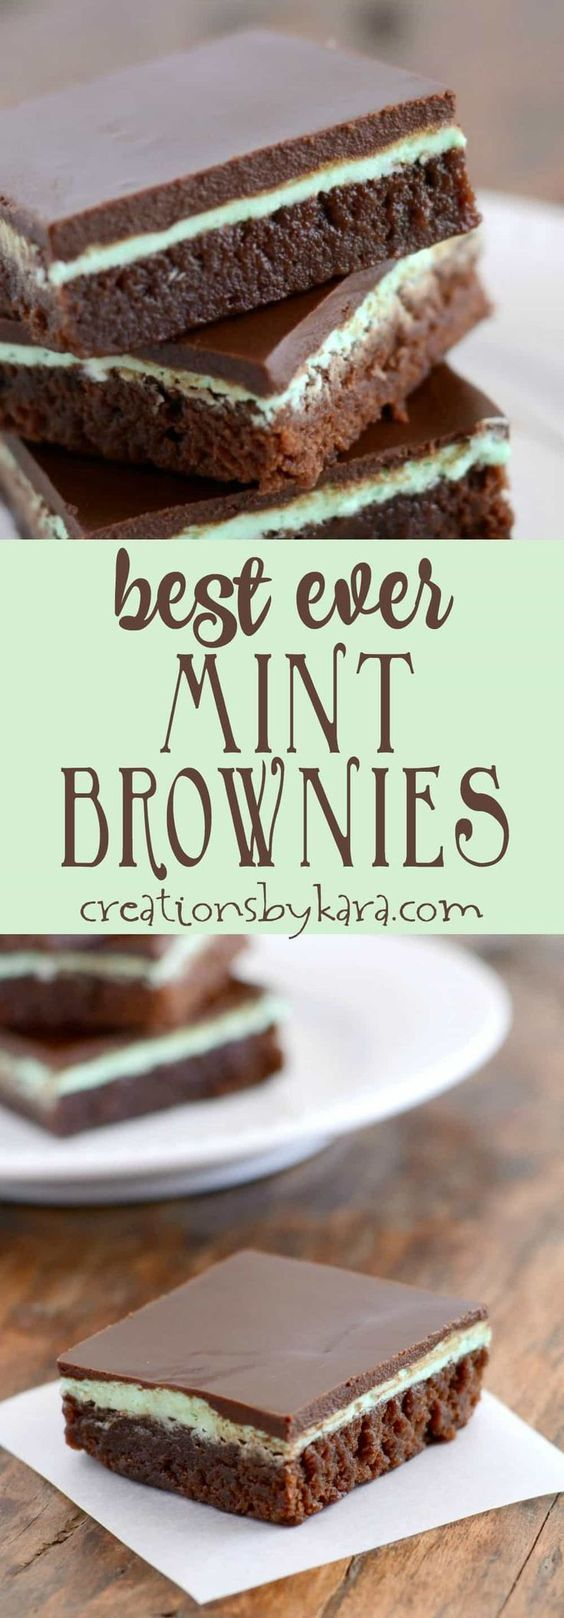 Recipe for mint brownies with a creamy mint frosting and chocolate topping | Posted By: DebbieNet.com